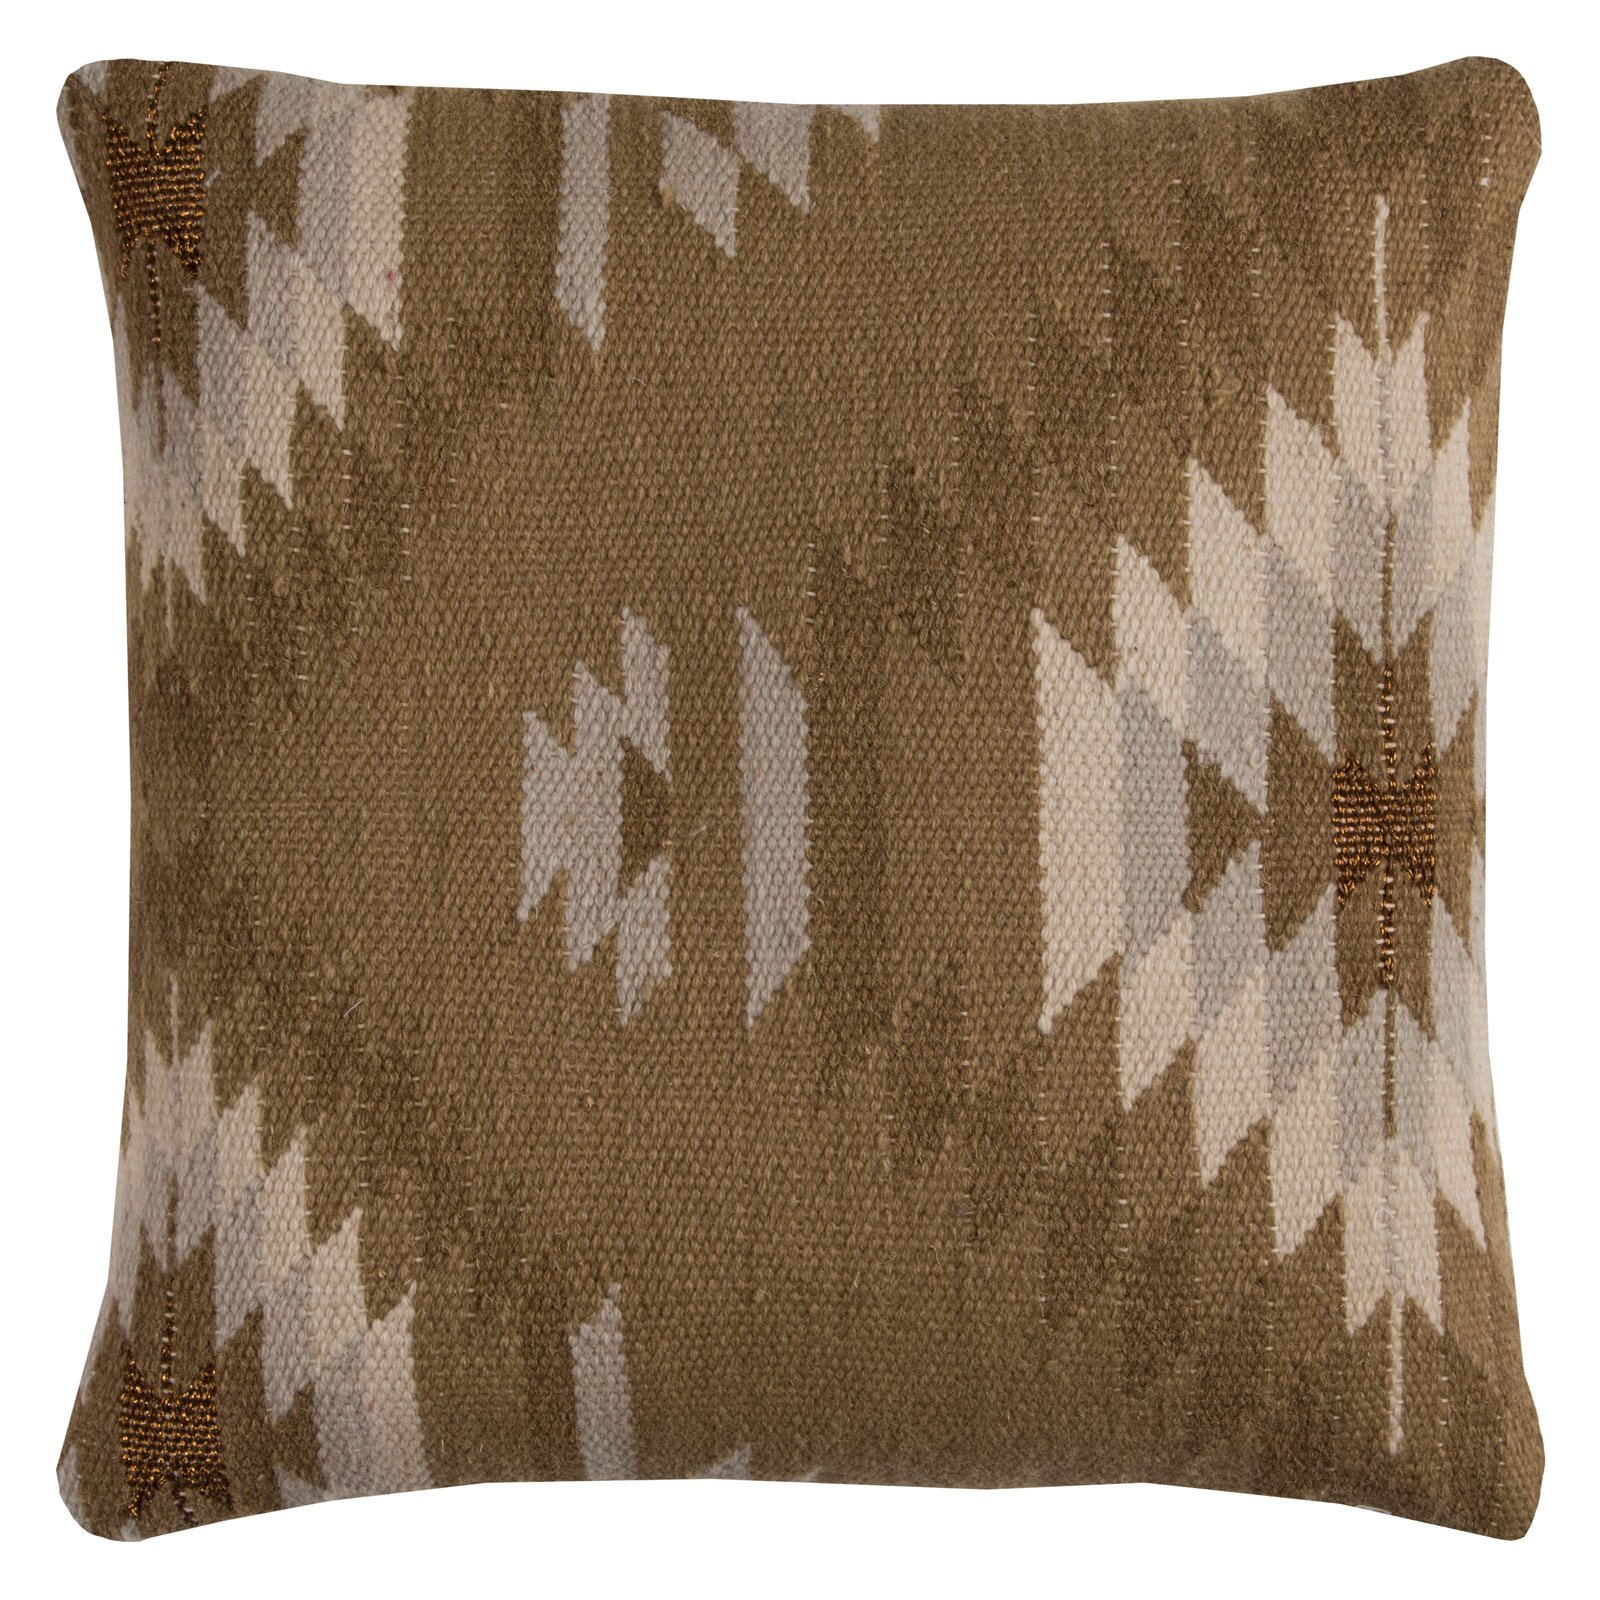 "Rizzy Home T11579 20"" x 20"" Throw Pillow with Hidden Zipper"